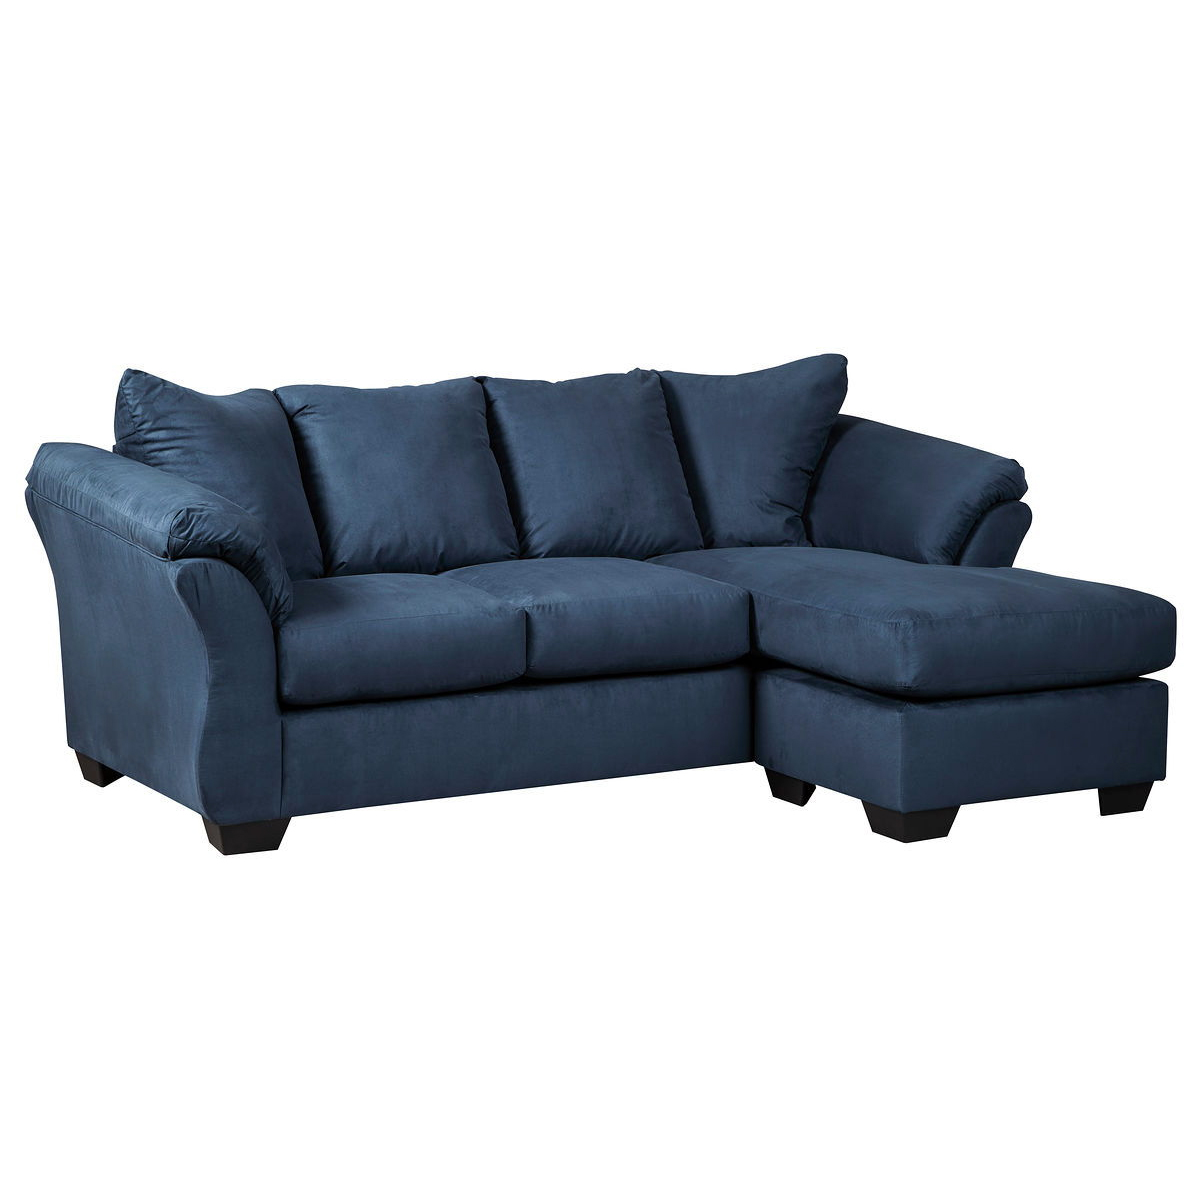 Darcy - Blue - Sofa Chaise